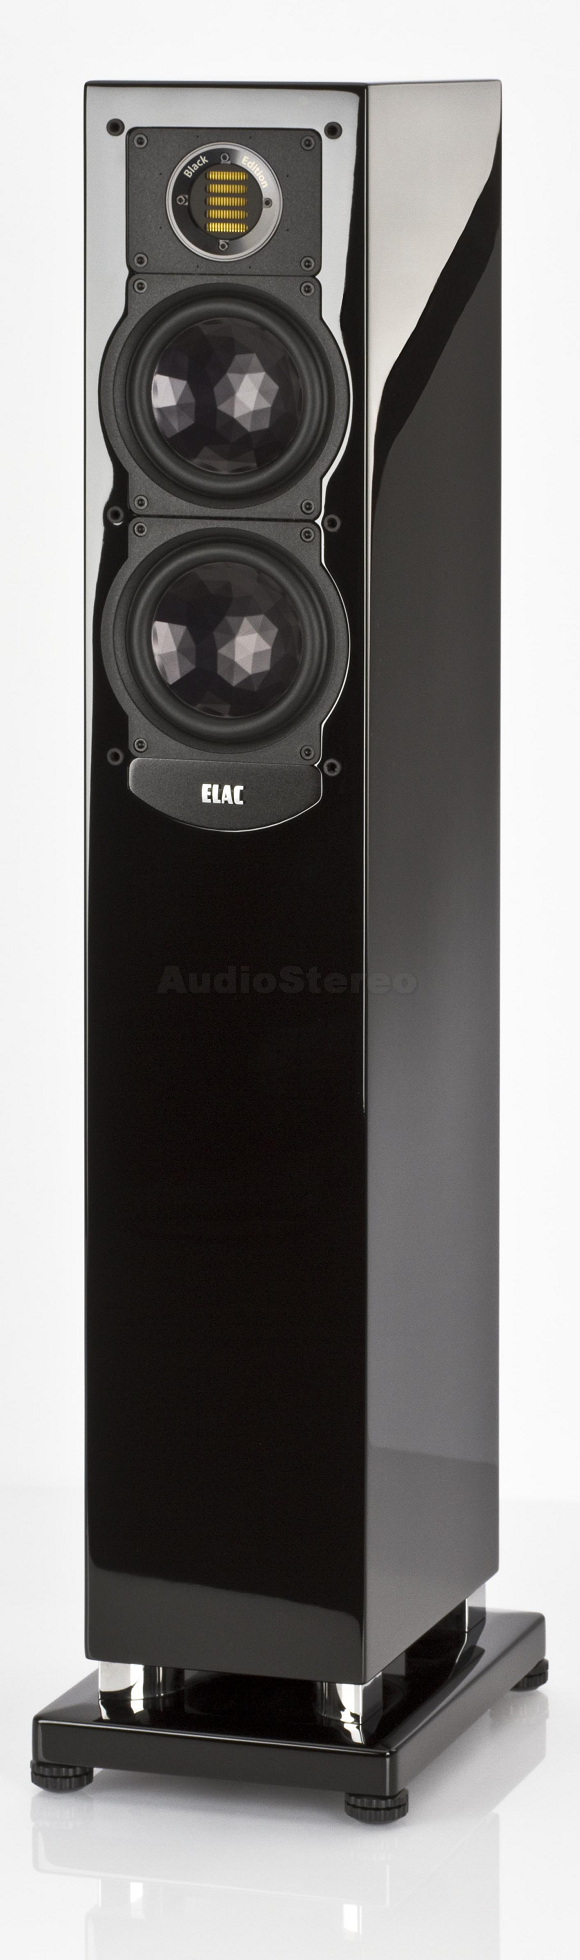 ELAC FS 247 Black Edition black high gloss finish